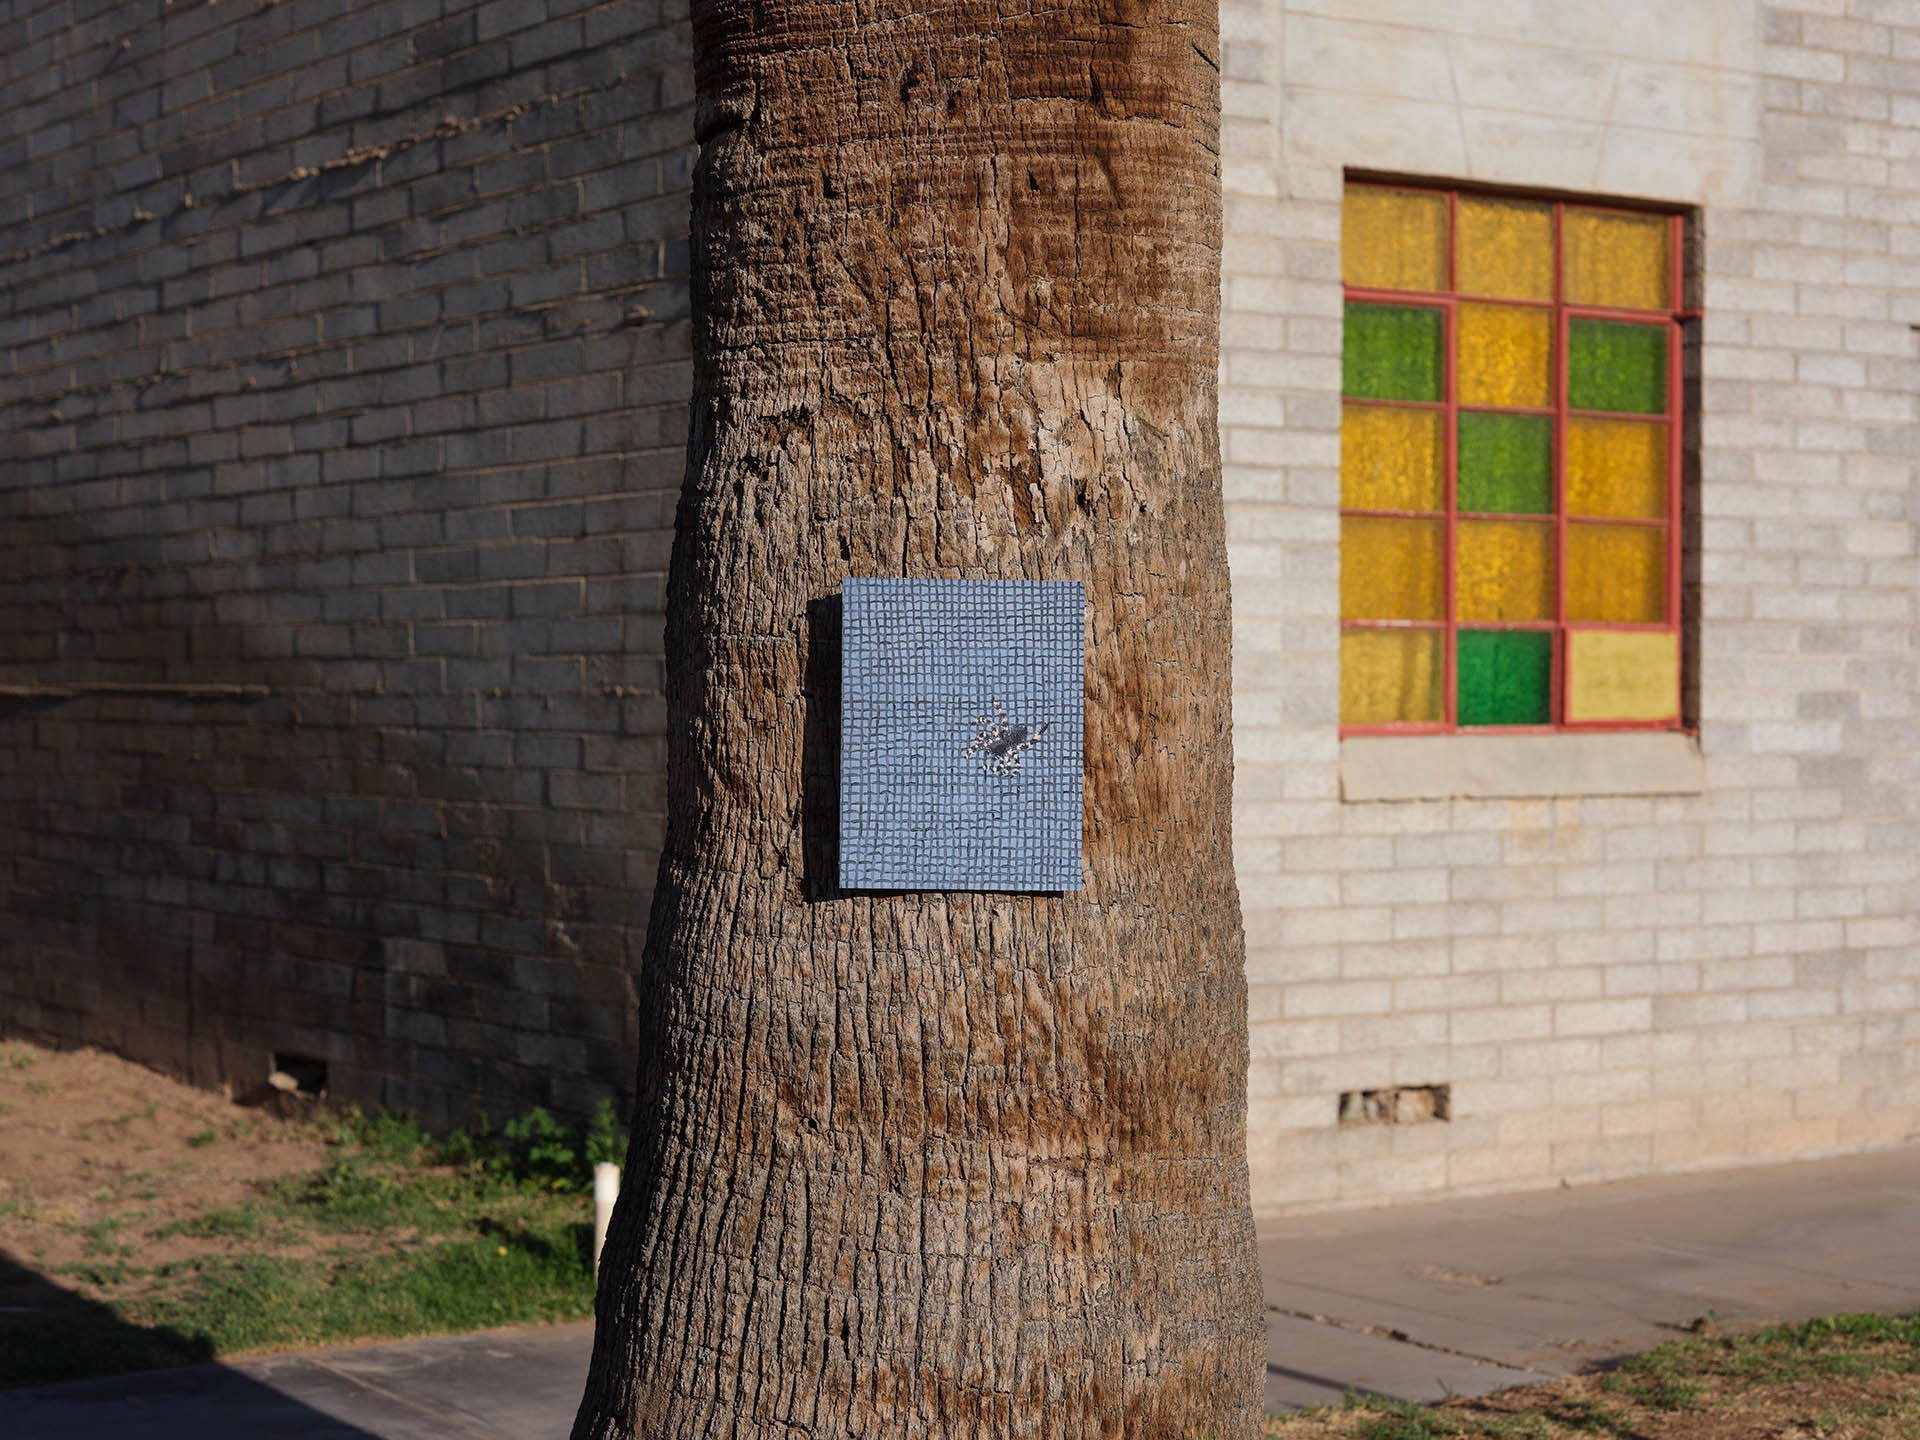 An installation view of Claudia Keep's painting, Consider the Spider, captured by photographer Tag Christof in the Western United States in 2021 for MARCH. The image shows a painting hung outside on a tree.